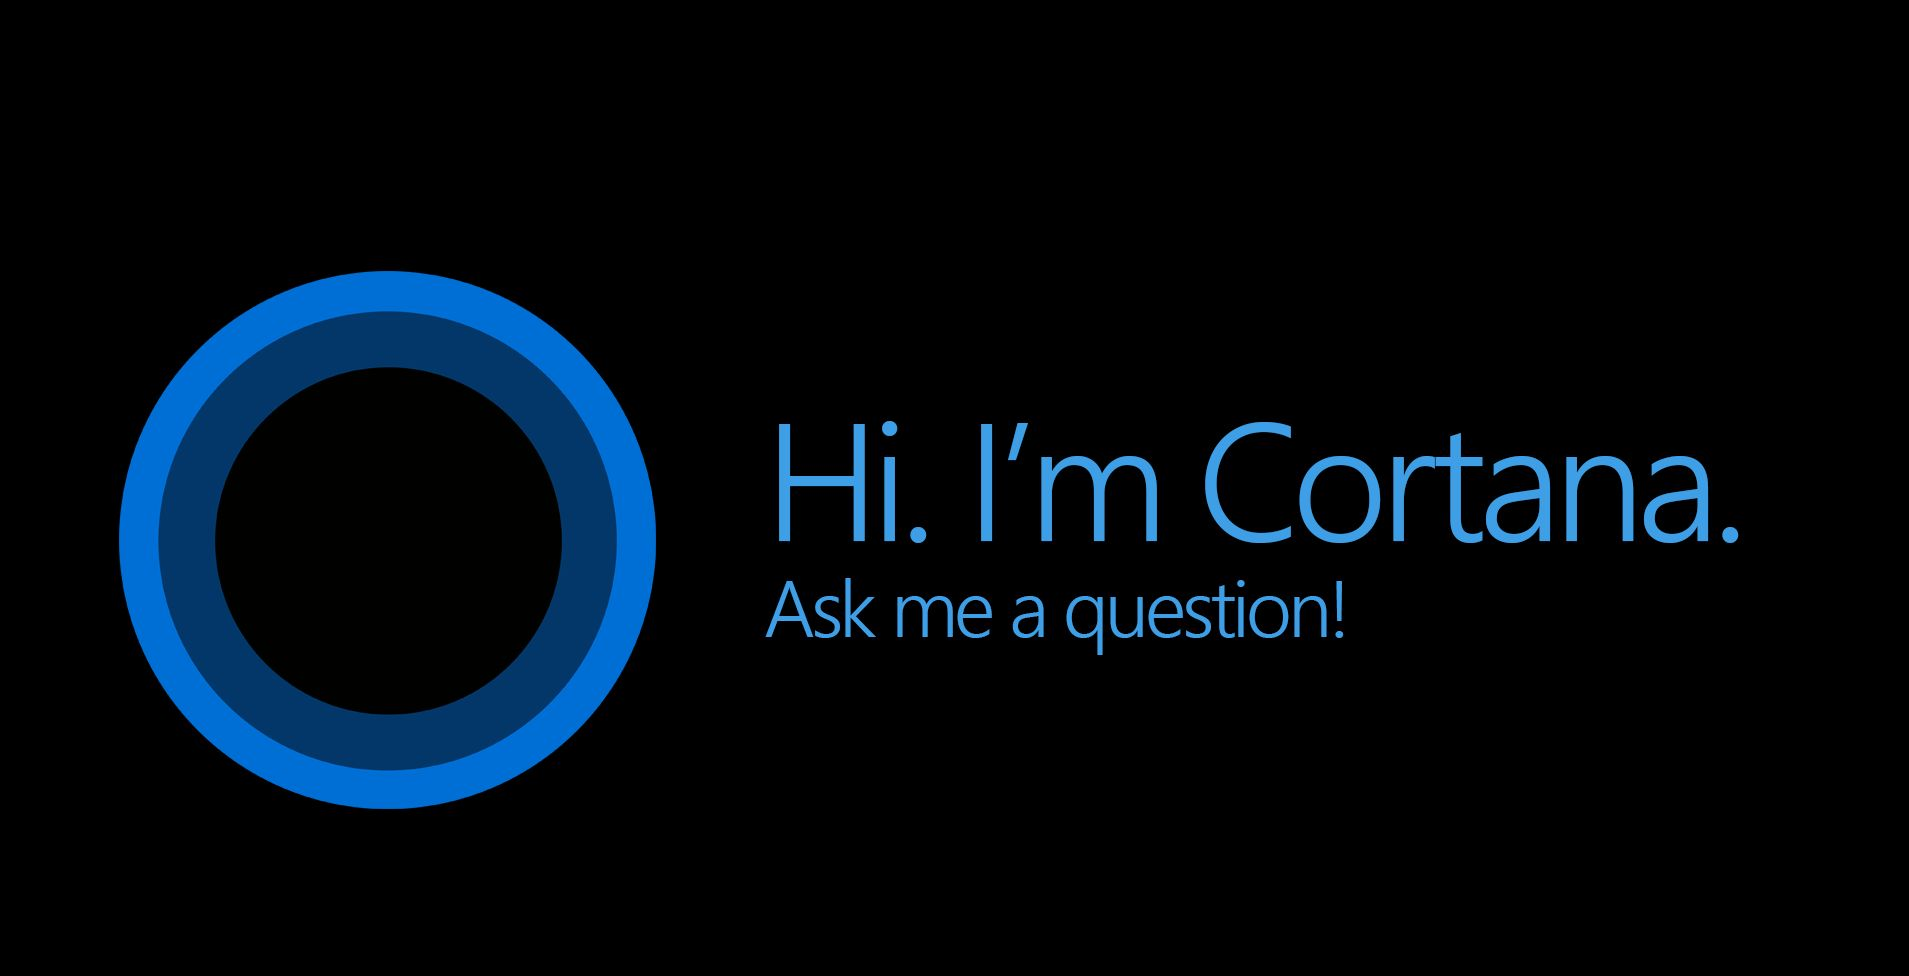 Change Cortana's Default Search Engine To Google Search Engine